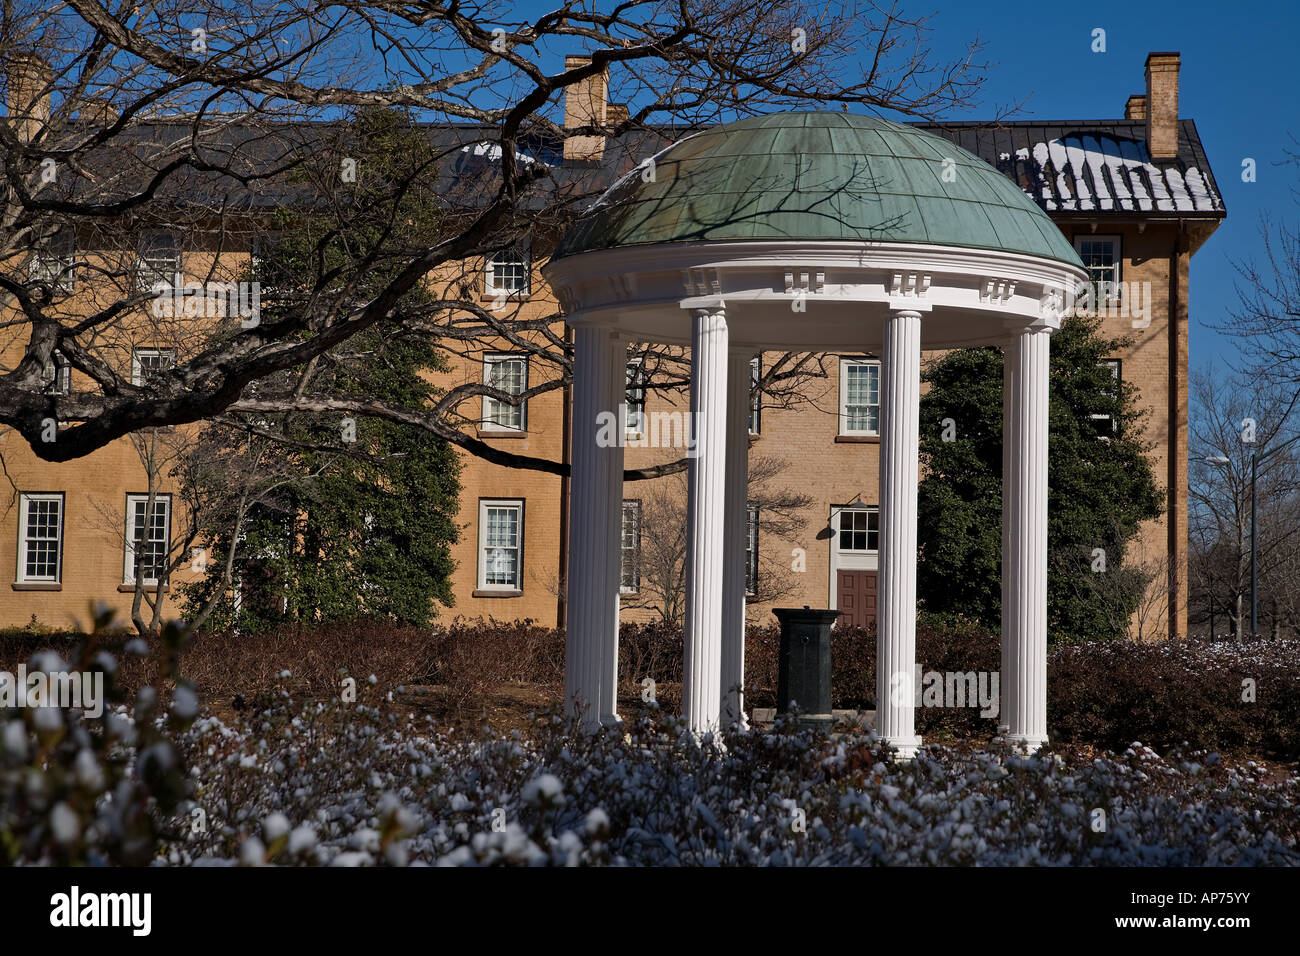 The symbol of the University of North Carolina - the Old Well - Stock Image